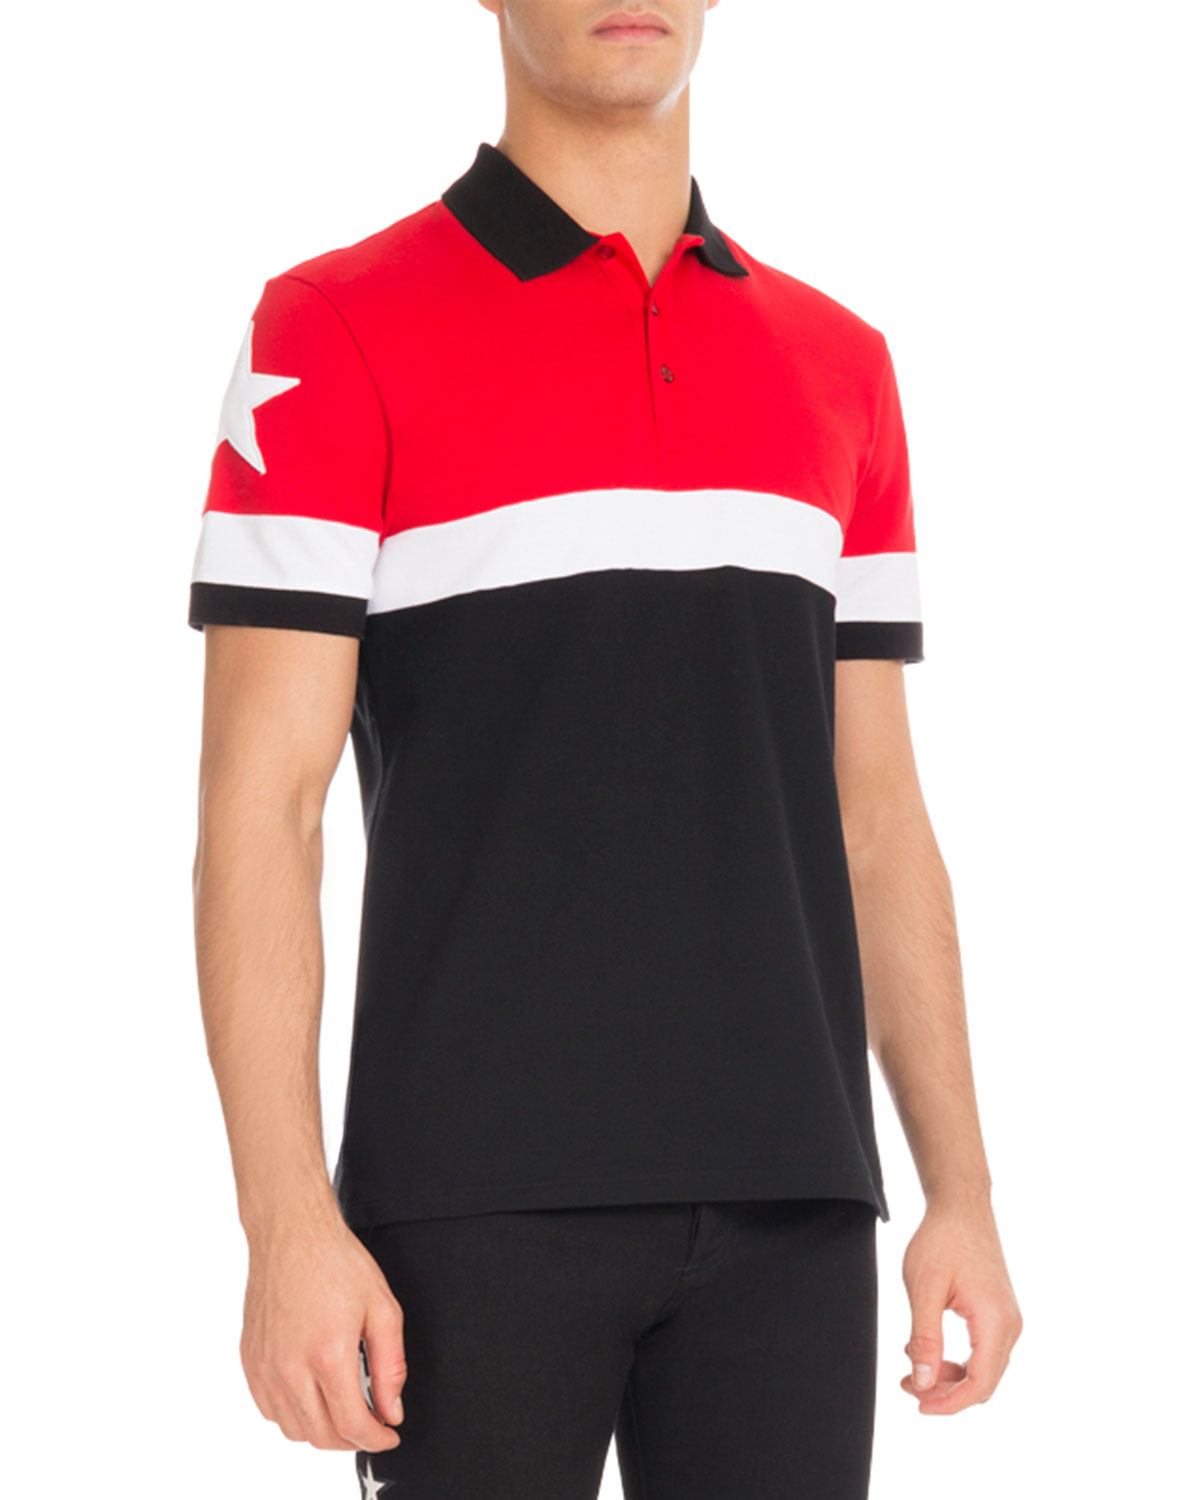 4b4031cd1d66 Givenchy Cuban-Fit Colorblock Polo Shirt